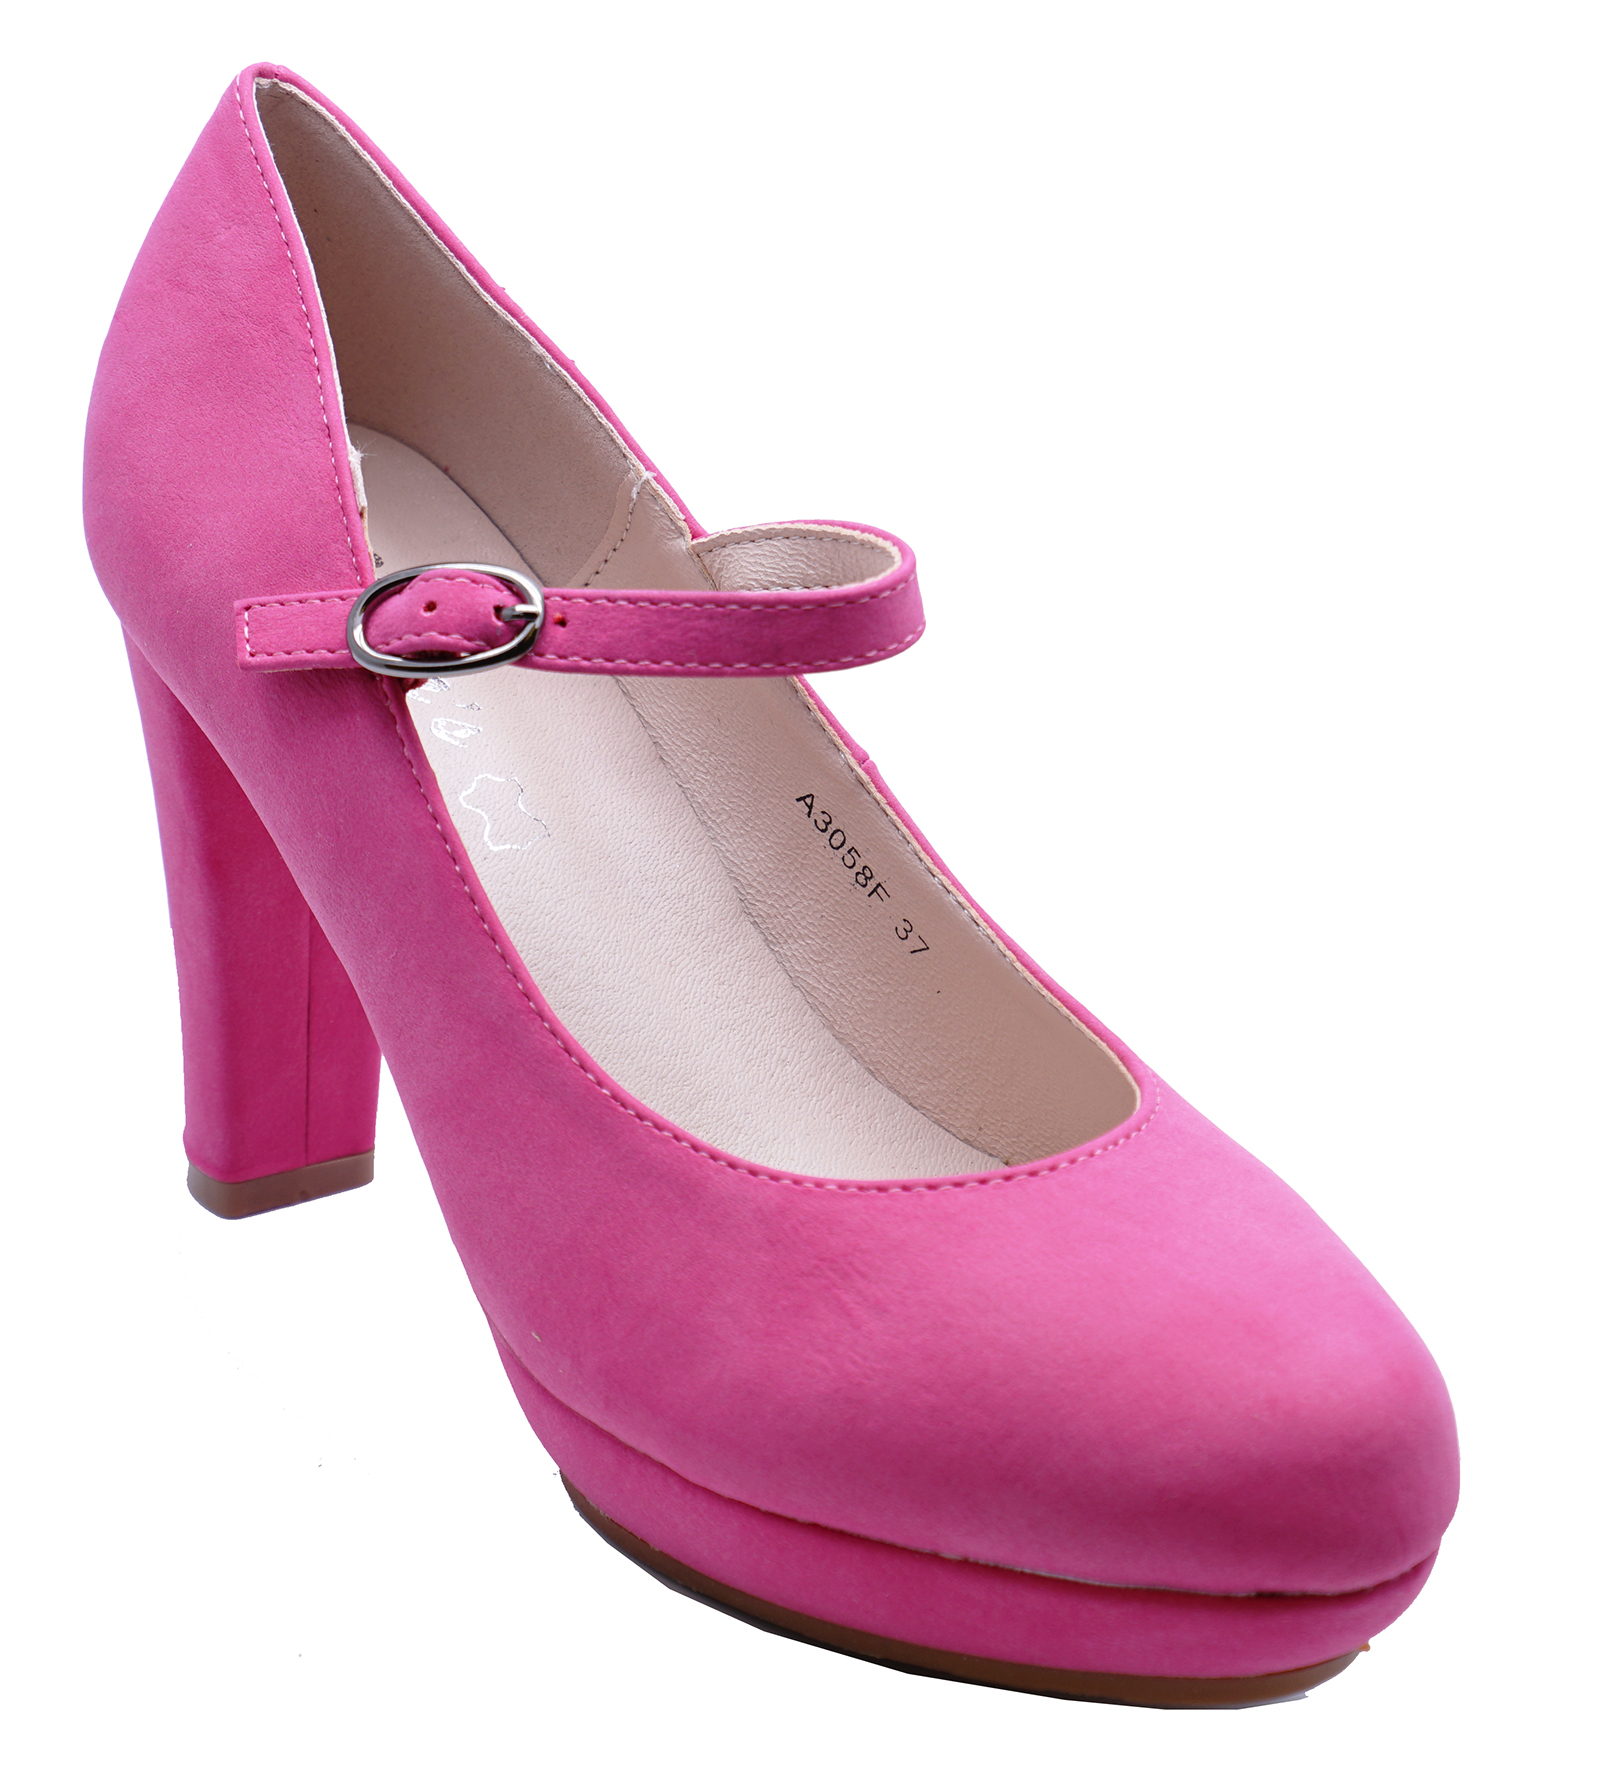 LADIES PINK HIGH-HEEL MARY-JANE COMFY WORK SLIP-ON CASUAL COURT SHOES UK 2-7